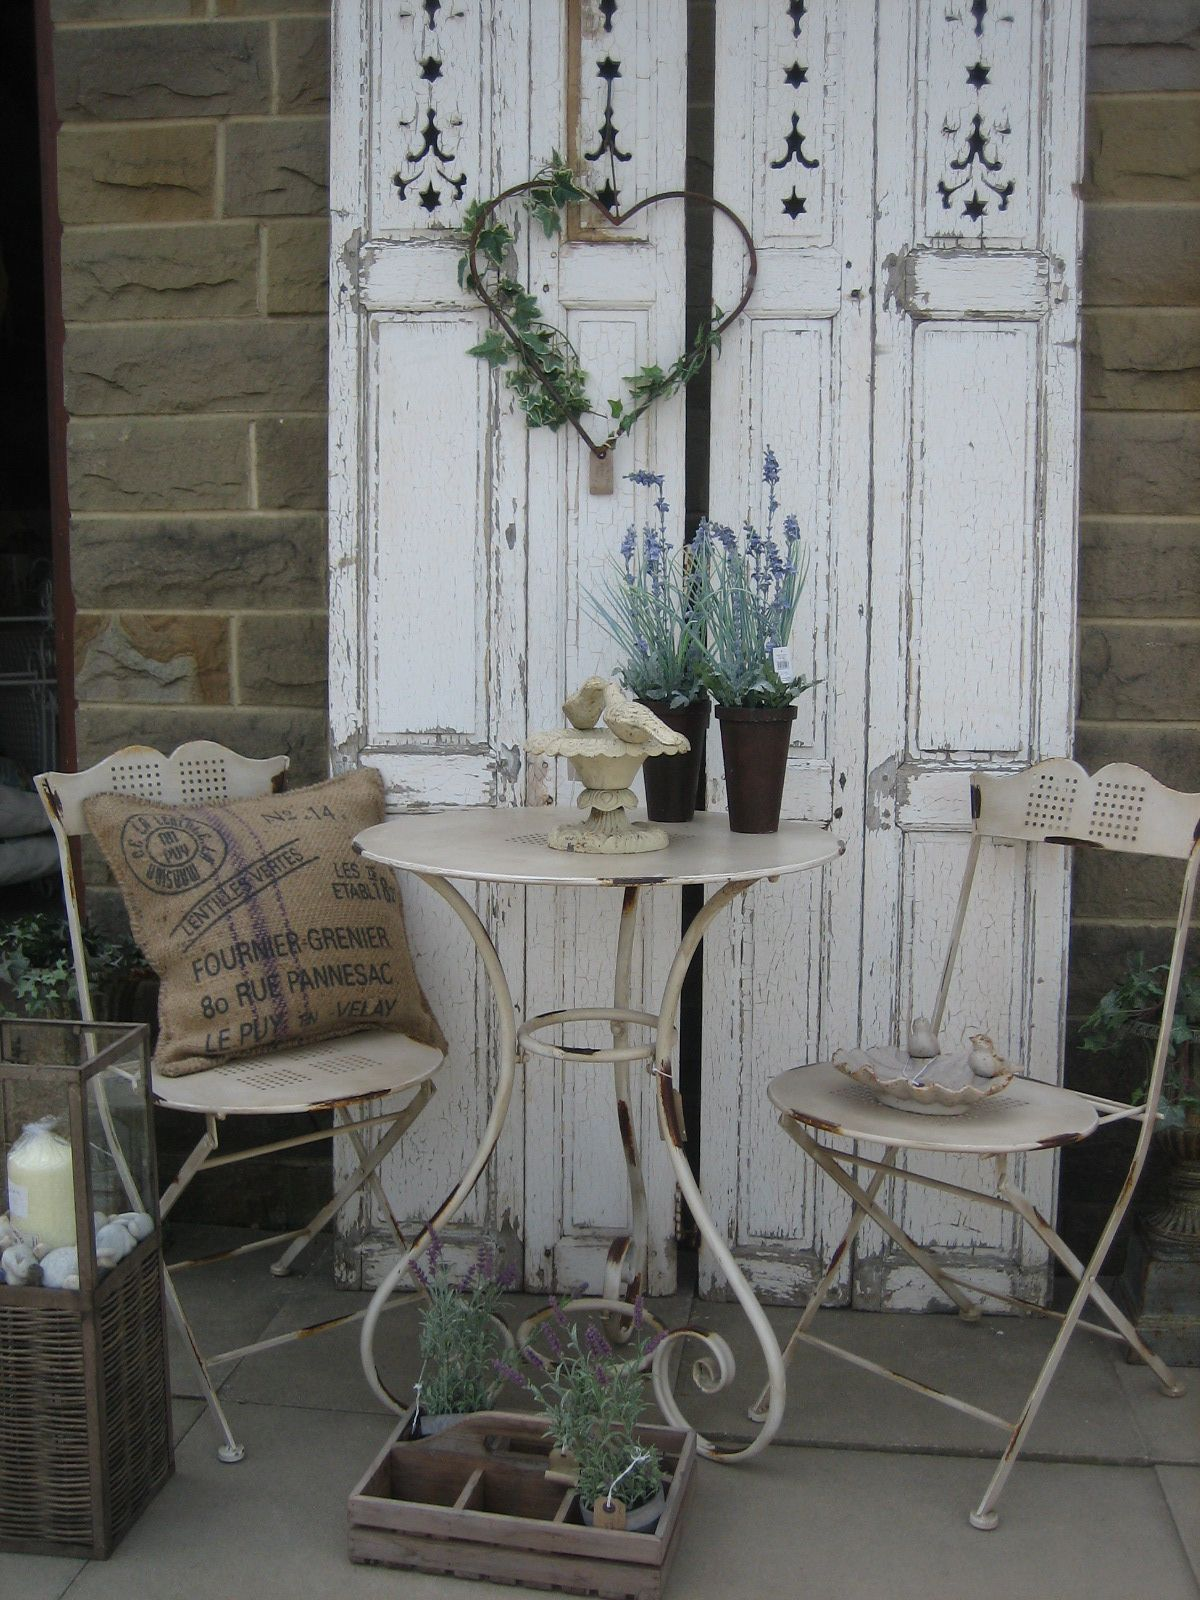 Love The Shutters In The Garden Very Chic Lookout For